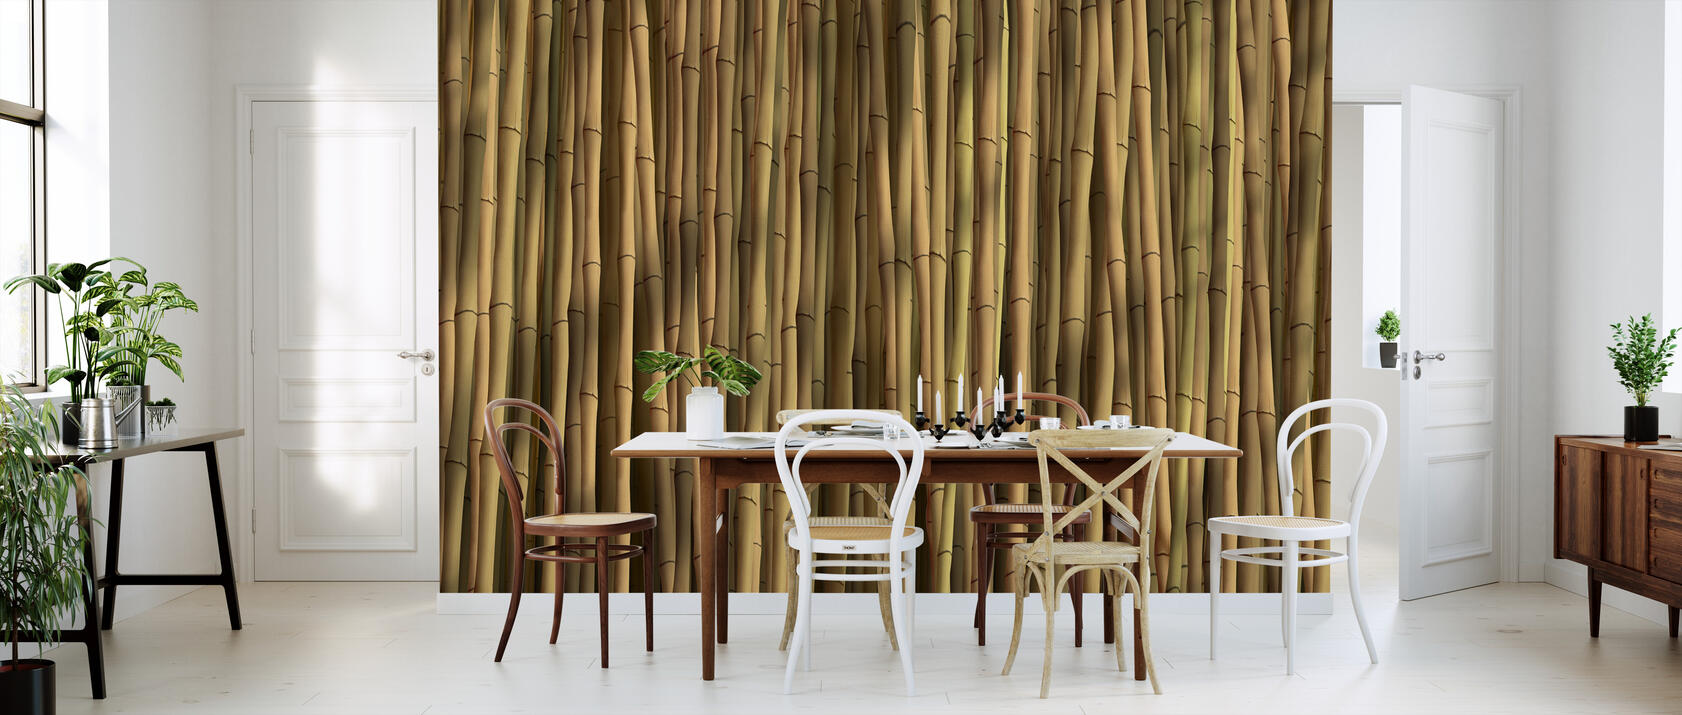 bamboo natural fototapete nach ma photowall. Black Bedroom Furniture Sets. Home Design Ideas